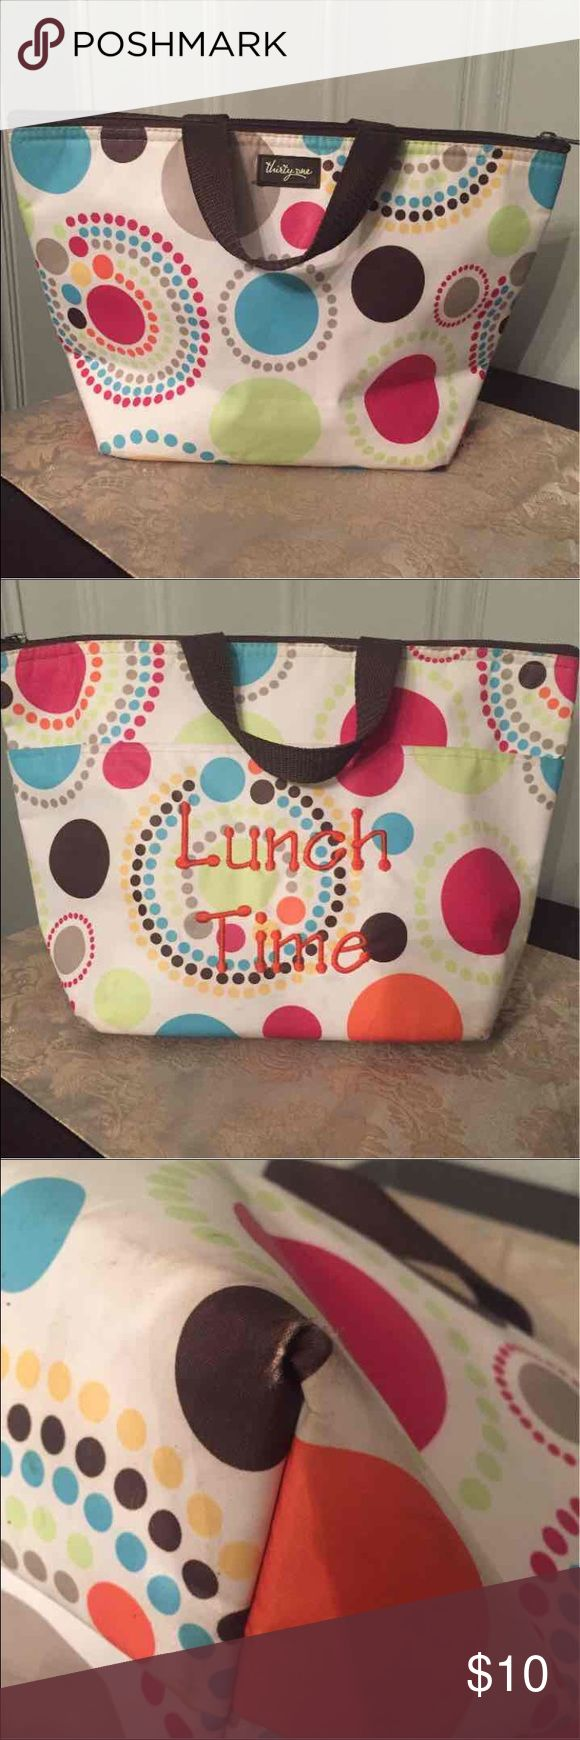 Thirty One Lunch bag Just a little worn on corners/great shape otherwise Thirty One Bags Totes